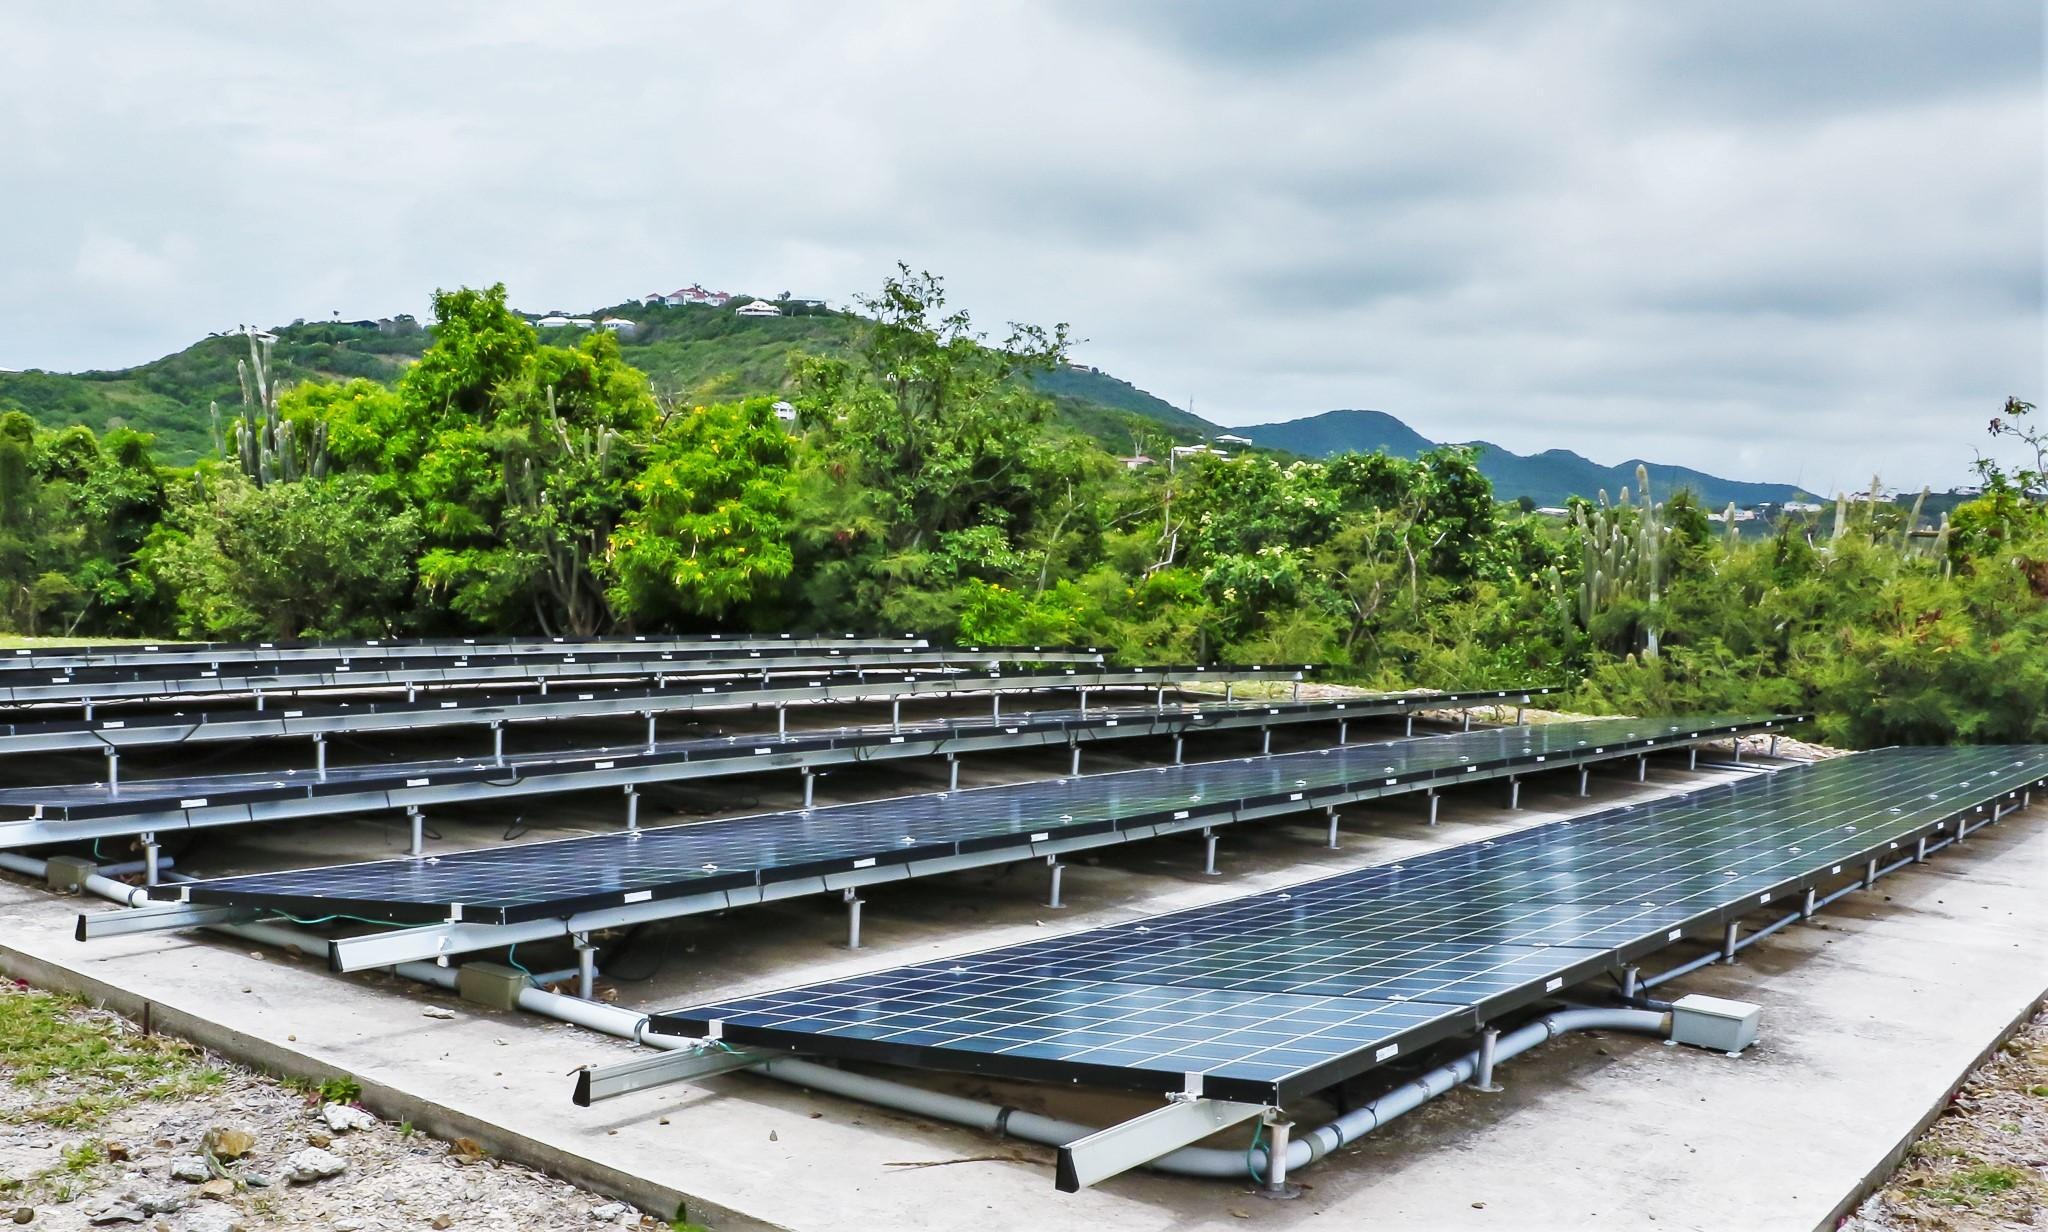 Immaculately Maintained Solar Field